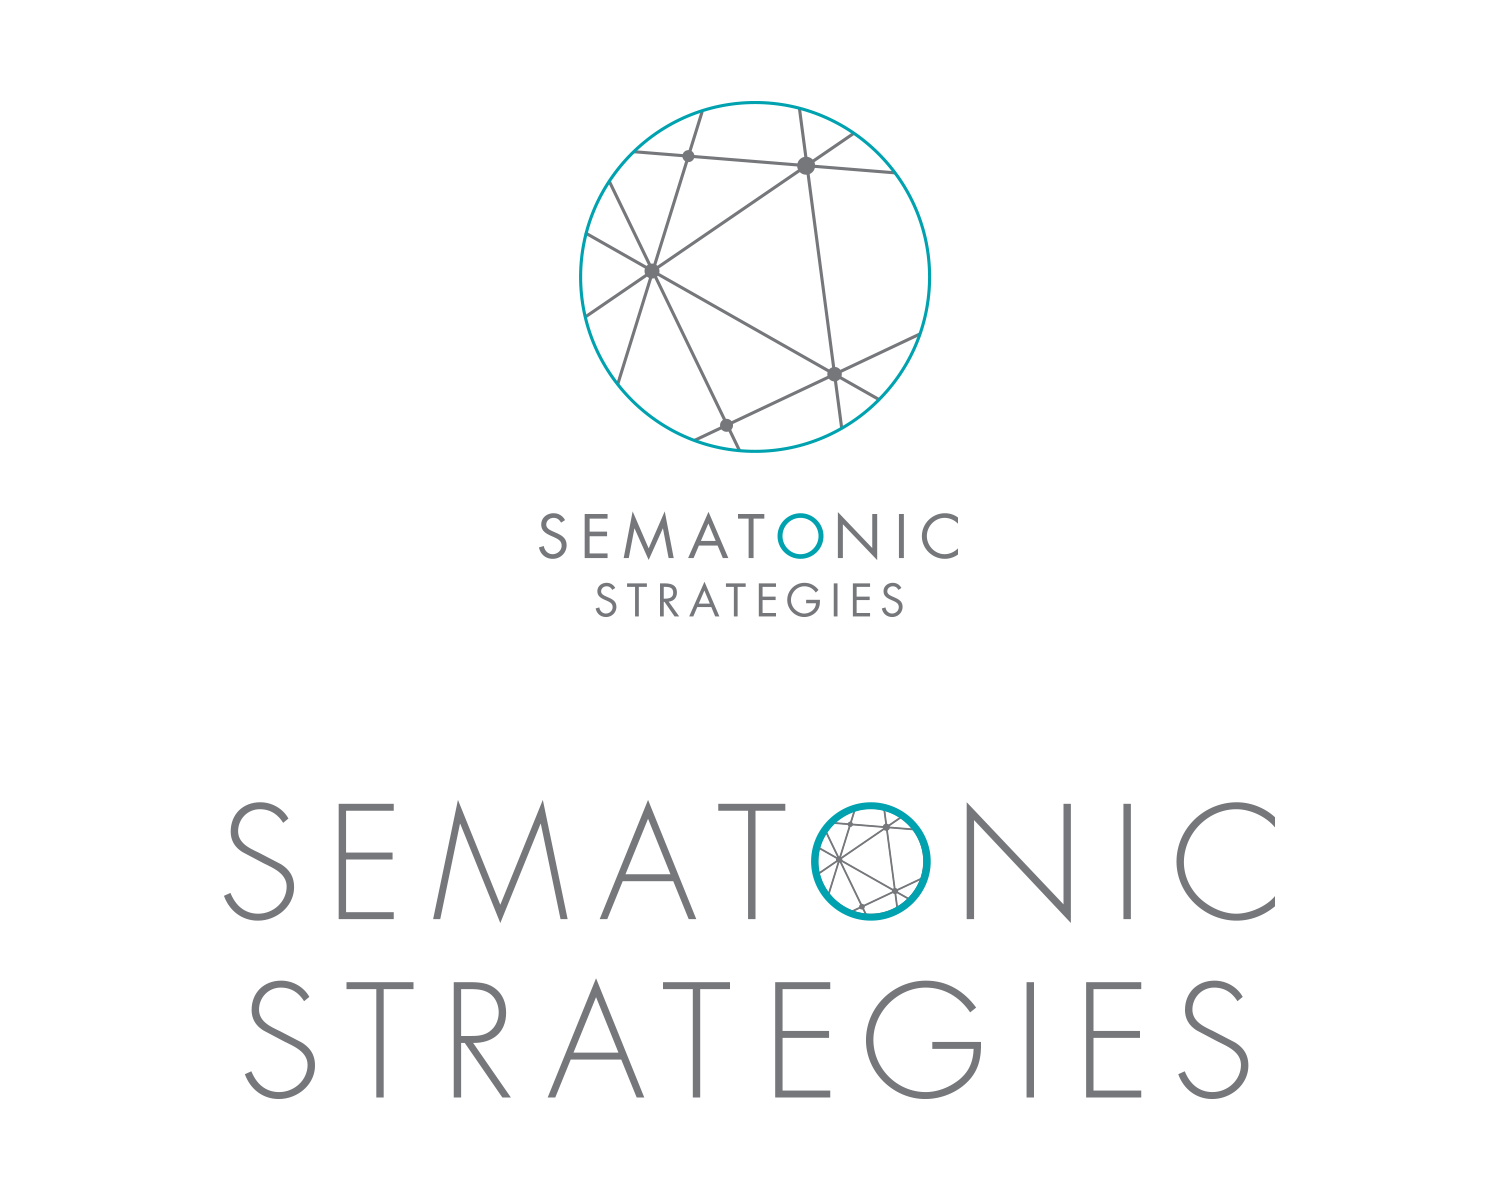 Sematonic Strategies Logos